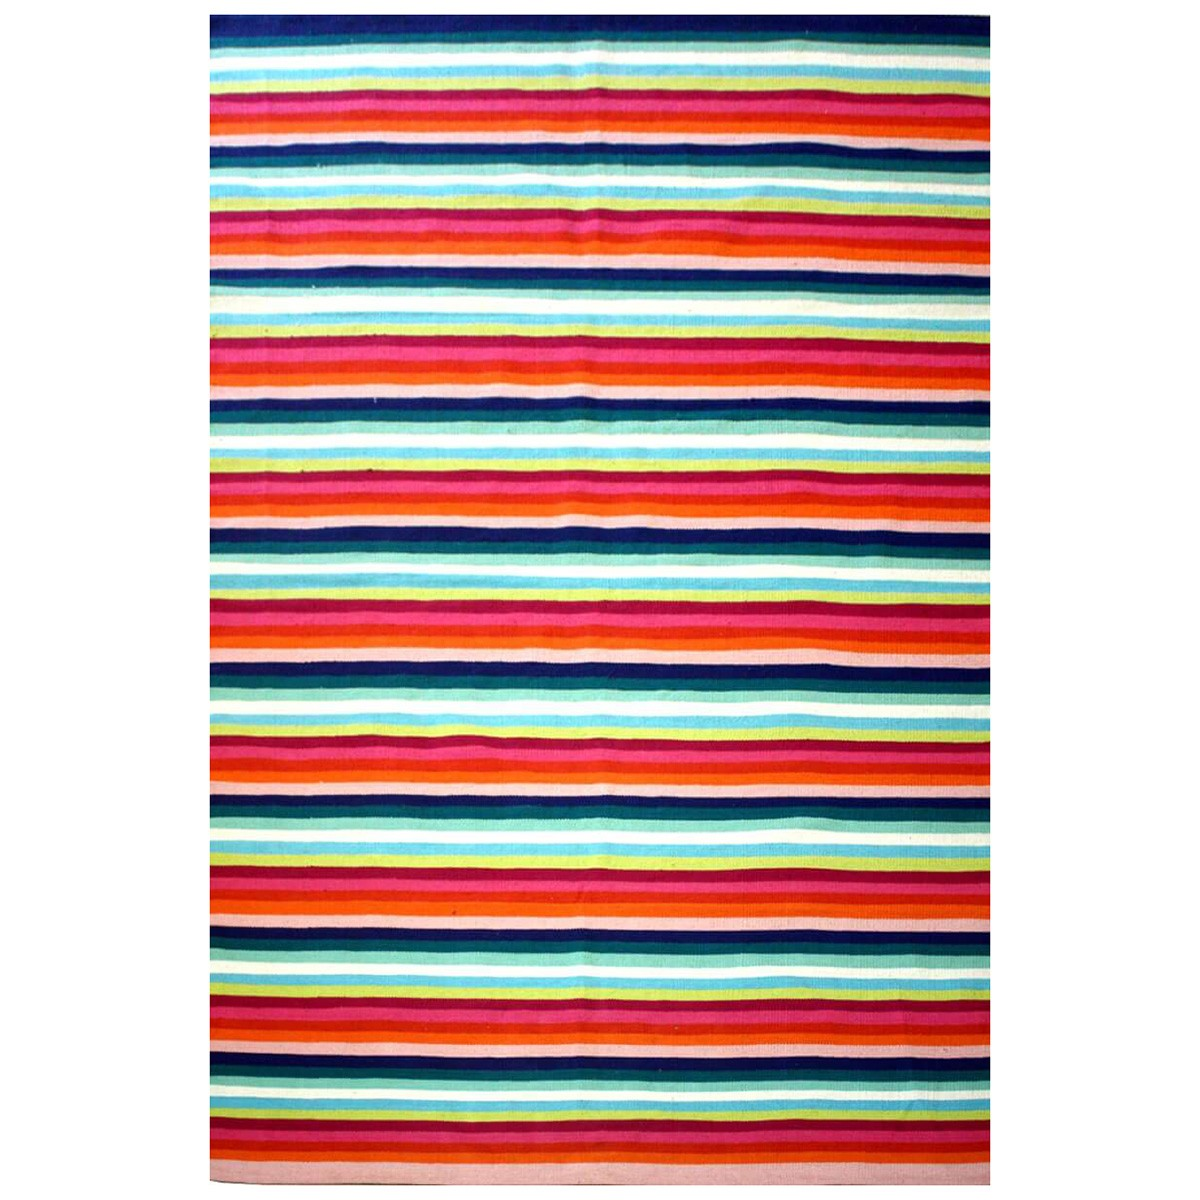 Ghadamian Stripes No.003 Cotton Rug, 165x115cm